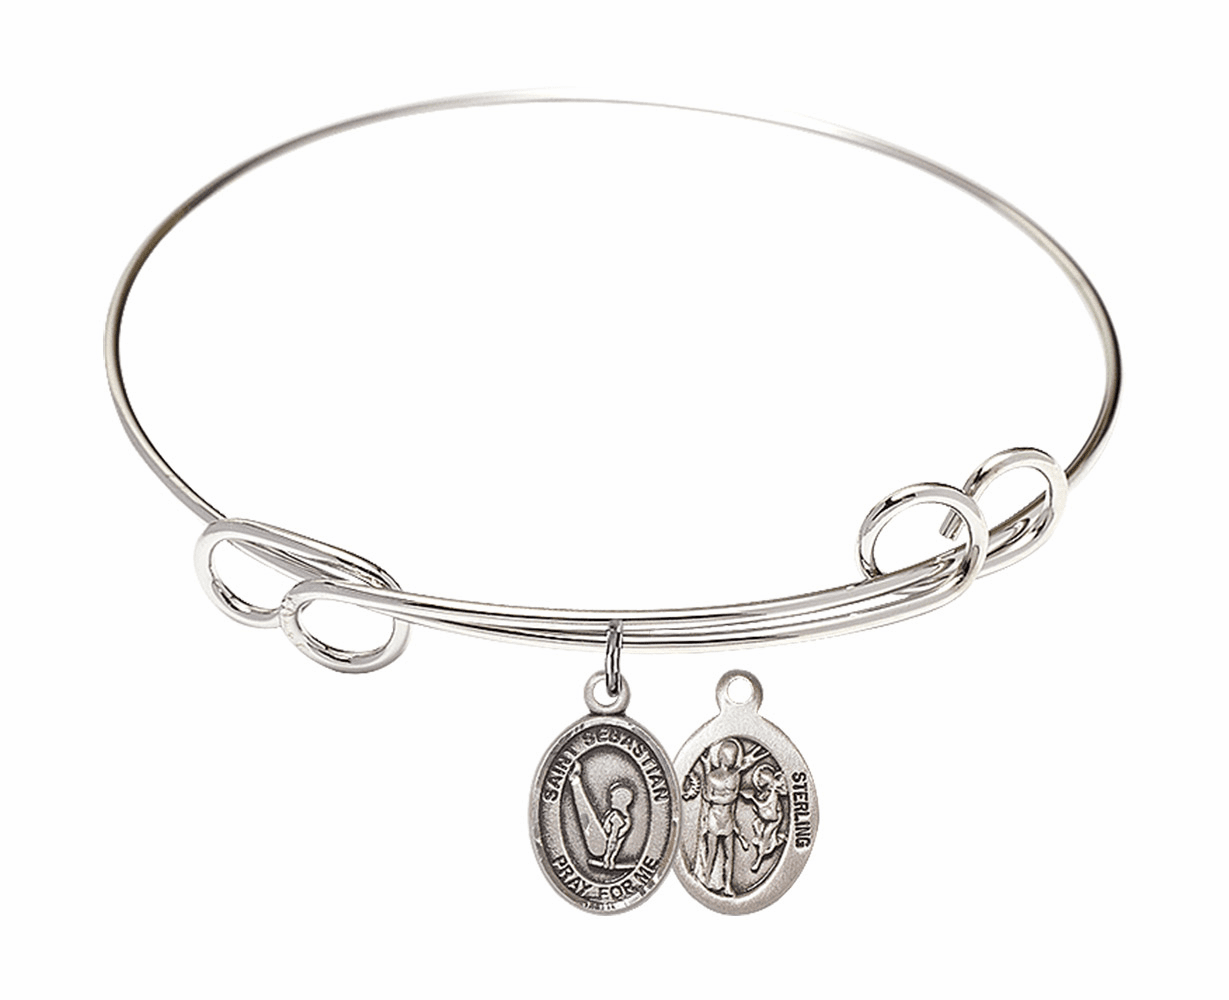 Round Loop St Sebastian Gymnastics Bangle Charm Bracelet by Bliss